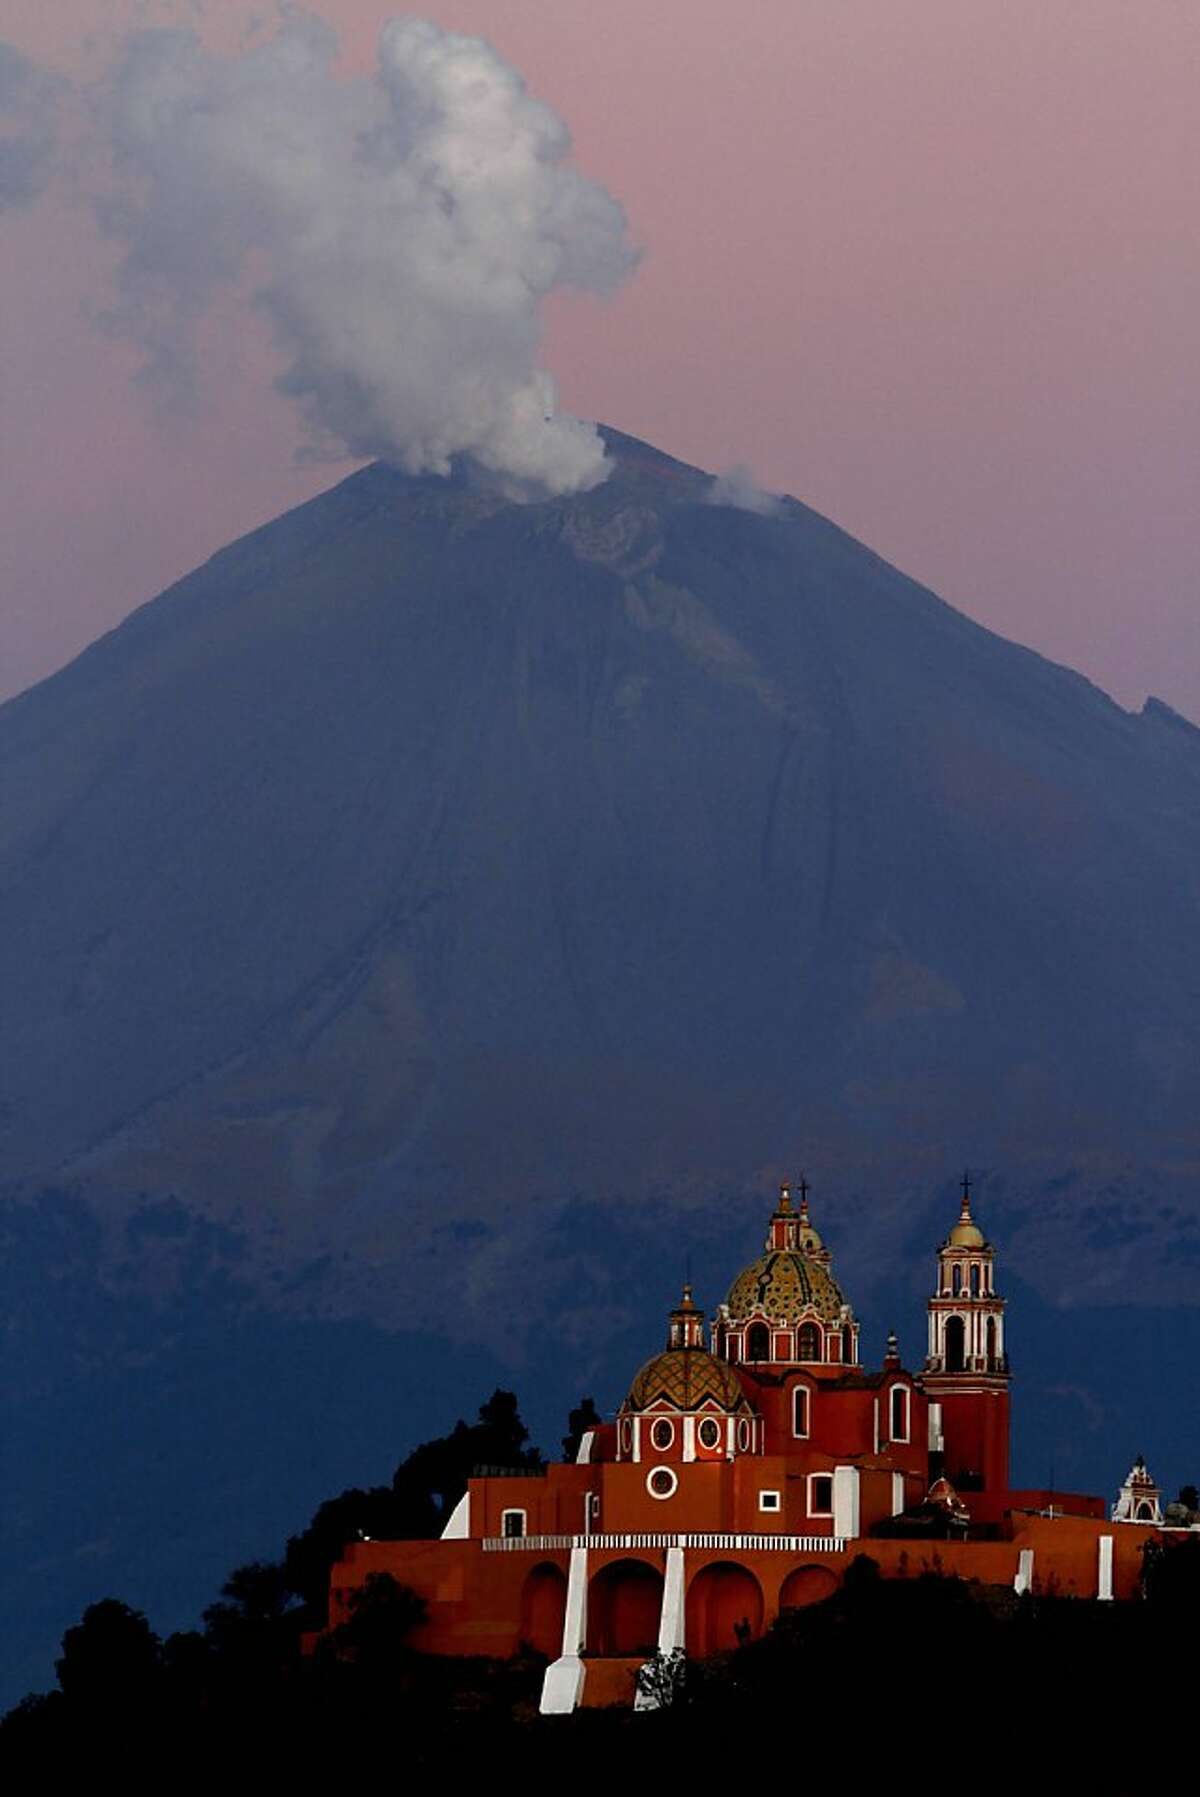 A plume of ash and steam rise from the Popocatepetl volcano overshadowing the Catholic church Nuestra Señora de los Remedios or Our Lady of Remedies in Cholula, in the Mexican state of Puebla, Sunday, April 22, 2012. Popo, as the volcano is commonly known, has put out small eruptions of ash almost daily since a round of eruptive activity began in 1994. A week ago, the eruptions started growing larger. Authorities prepared evacuation routes, ambulances and shelters in the event of a bigger explosion. (AP Photo/Marco Ugarte)